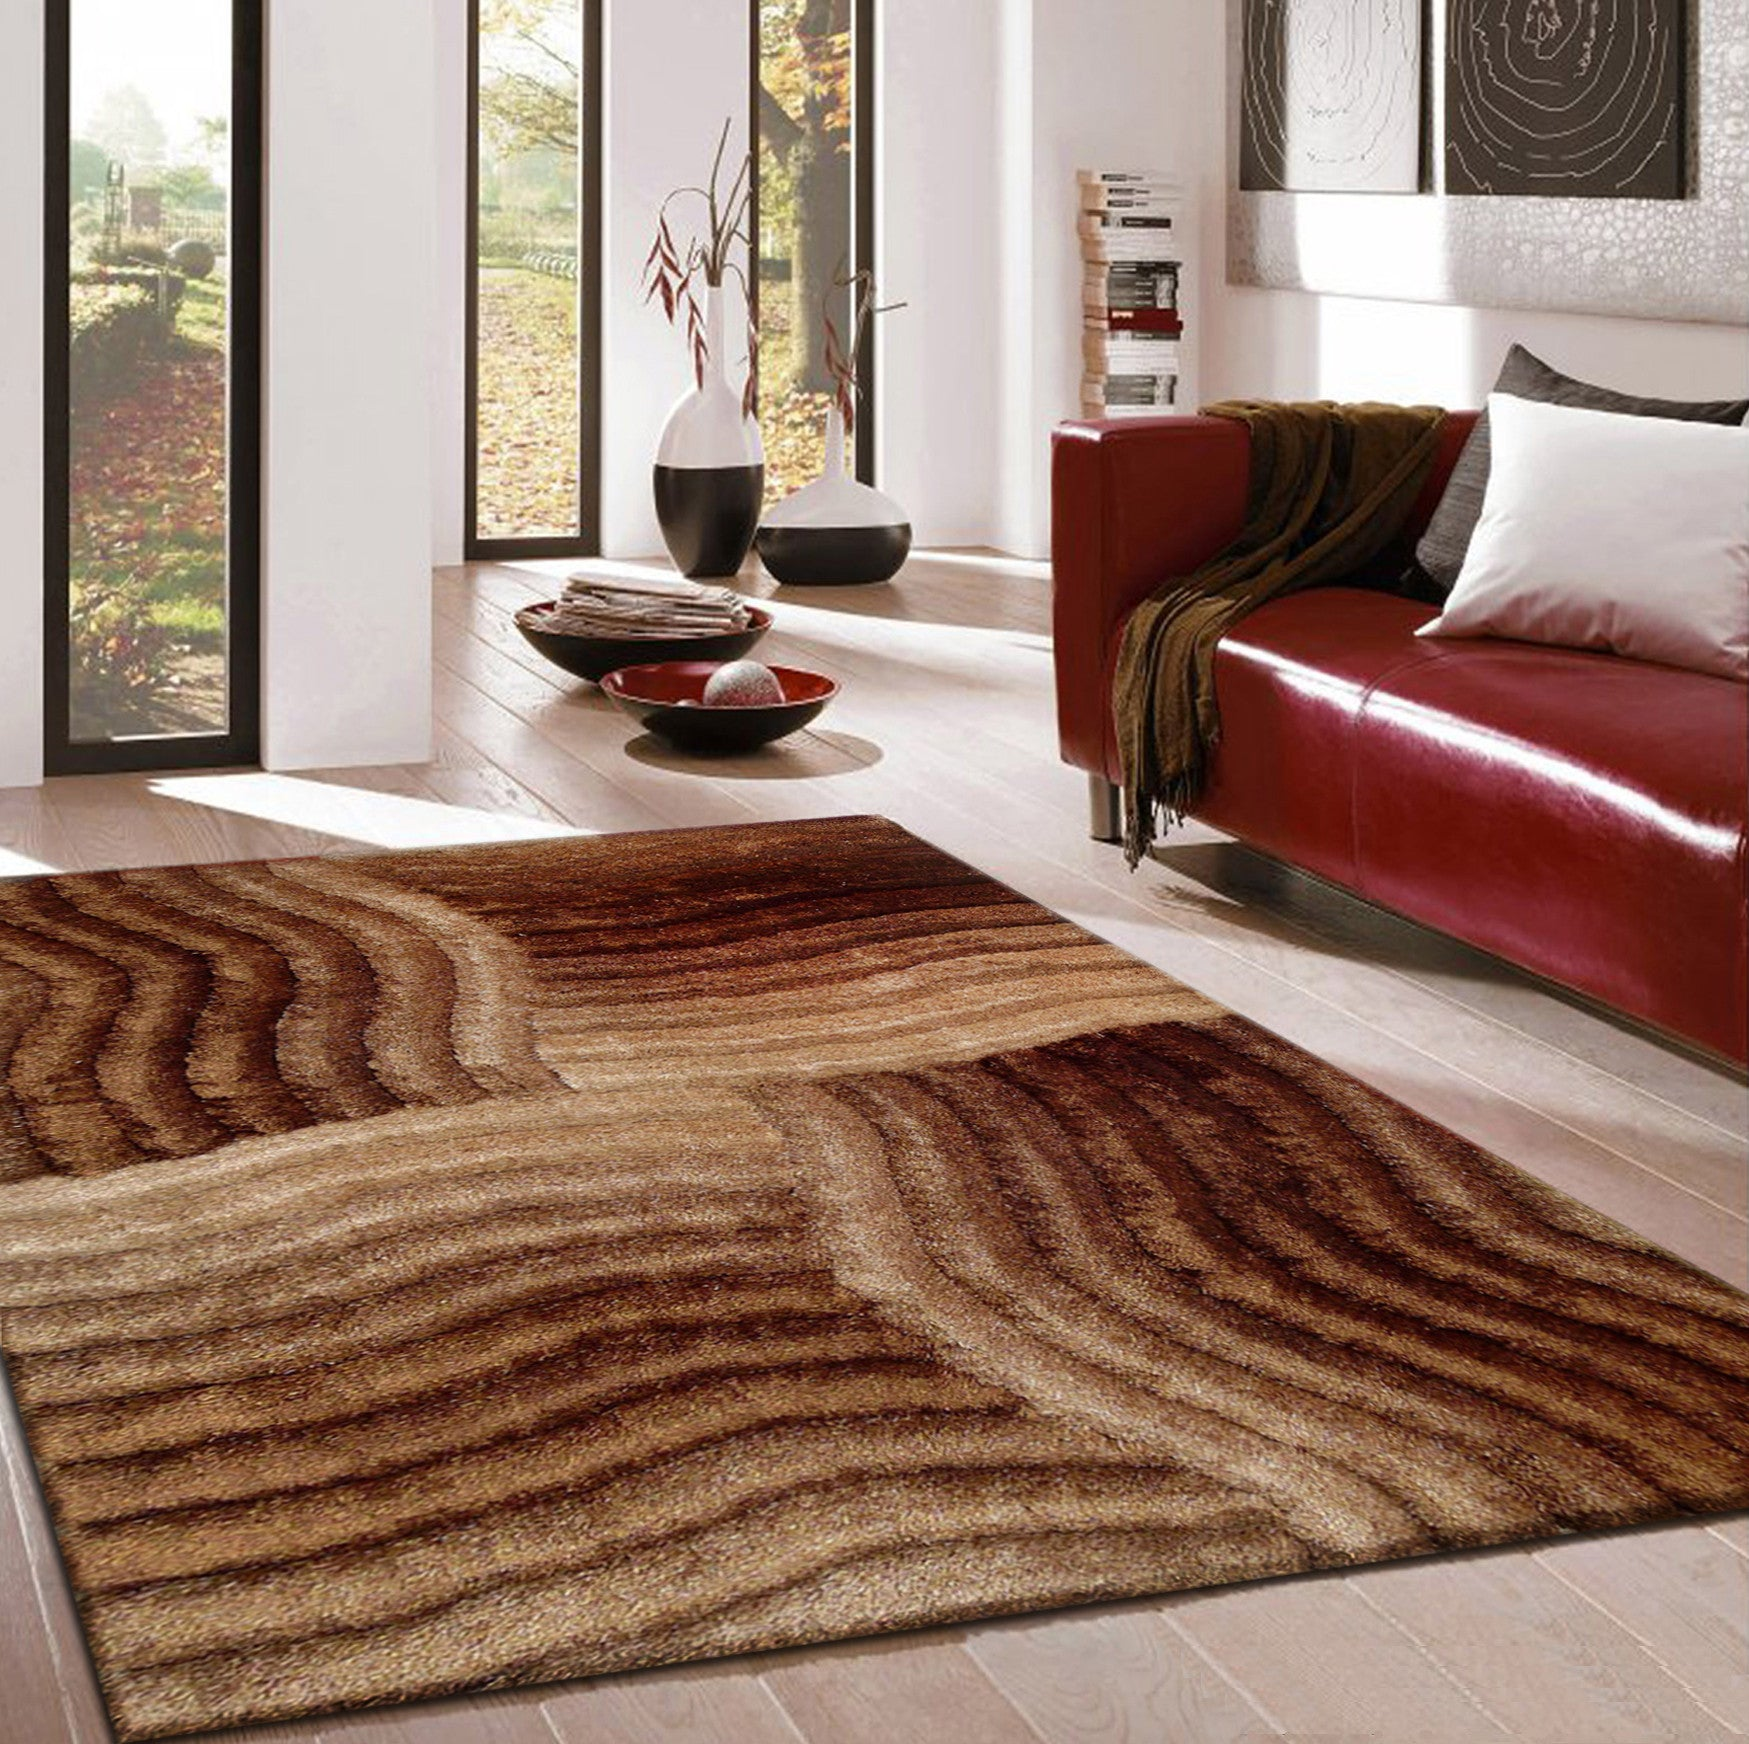 Hand Tufted Gold Brown 3 Dimensional Shag Area Rug With Hand Carved Design  5u0027 ...